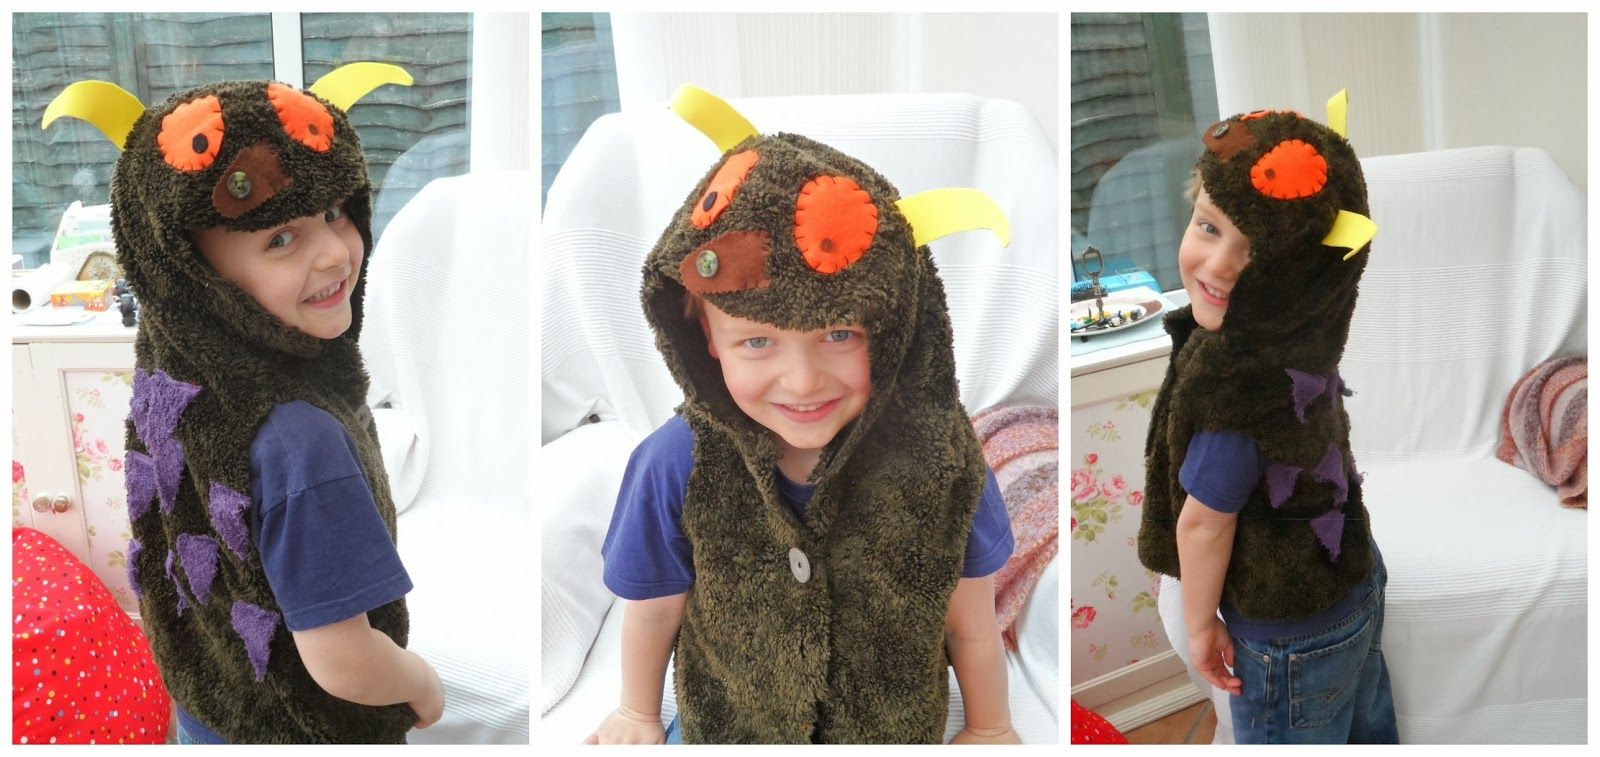 Simple Things: The Gruffalo, cute Gruffalo costume DIY